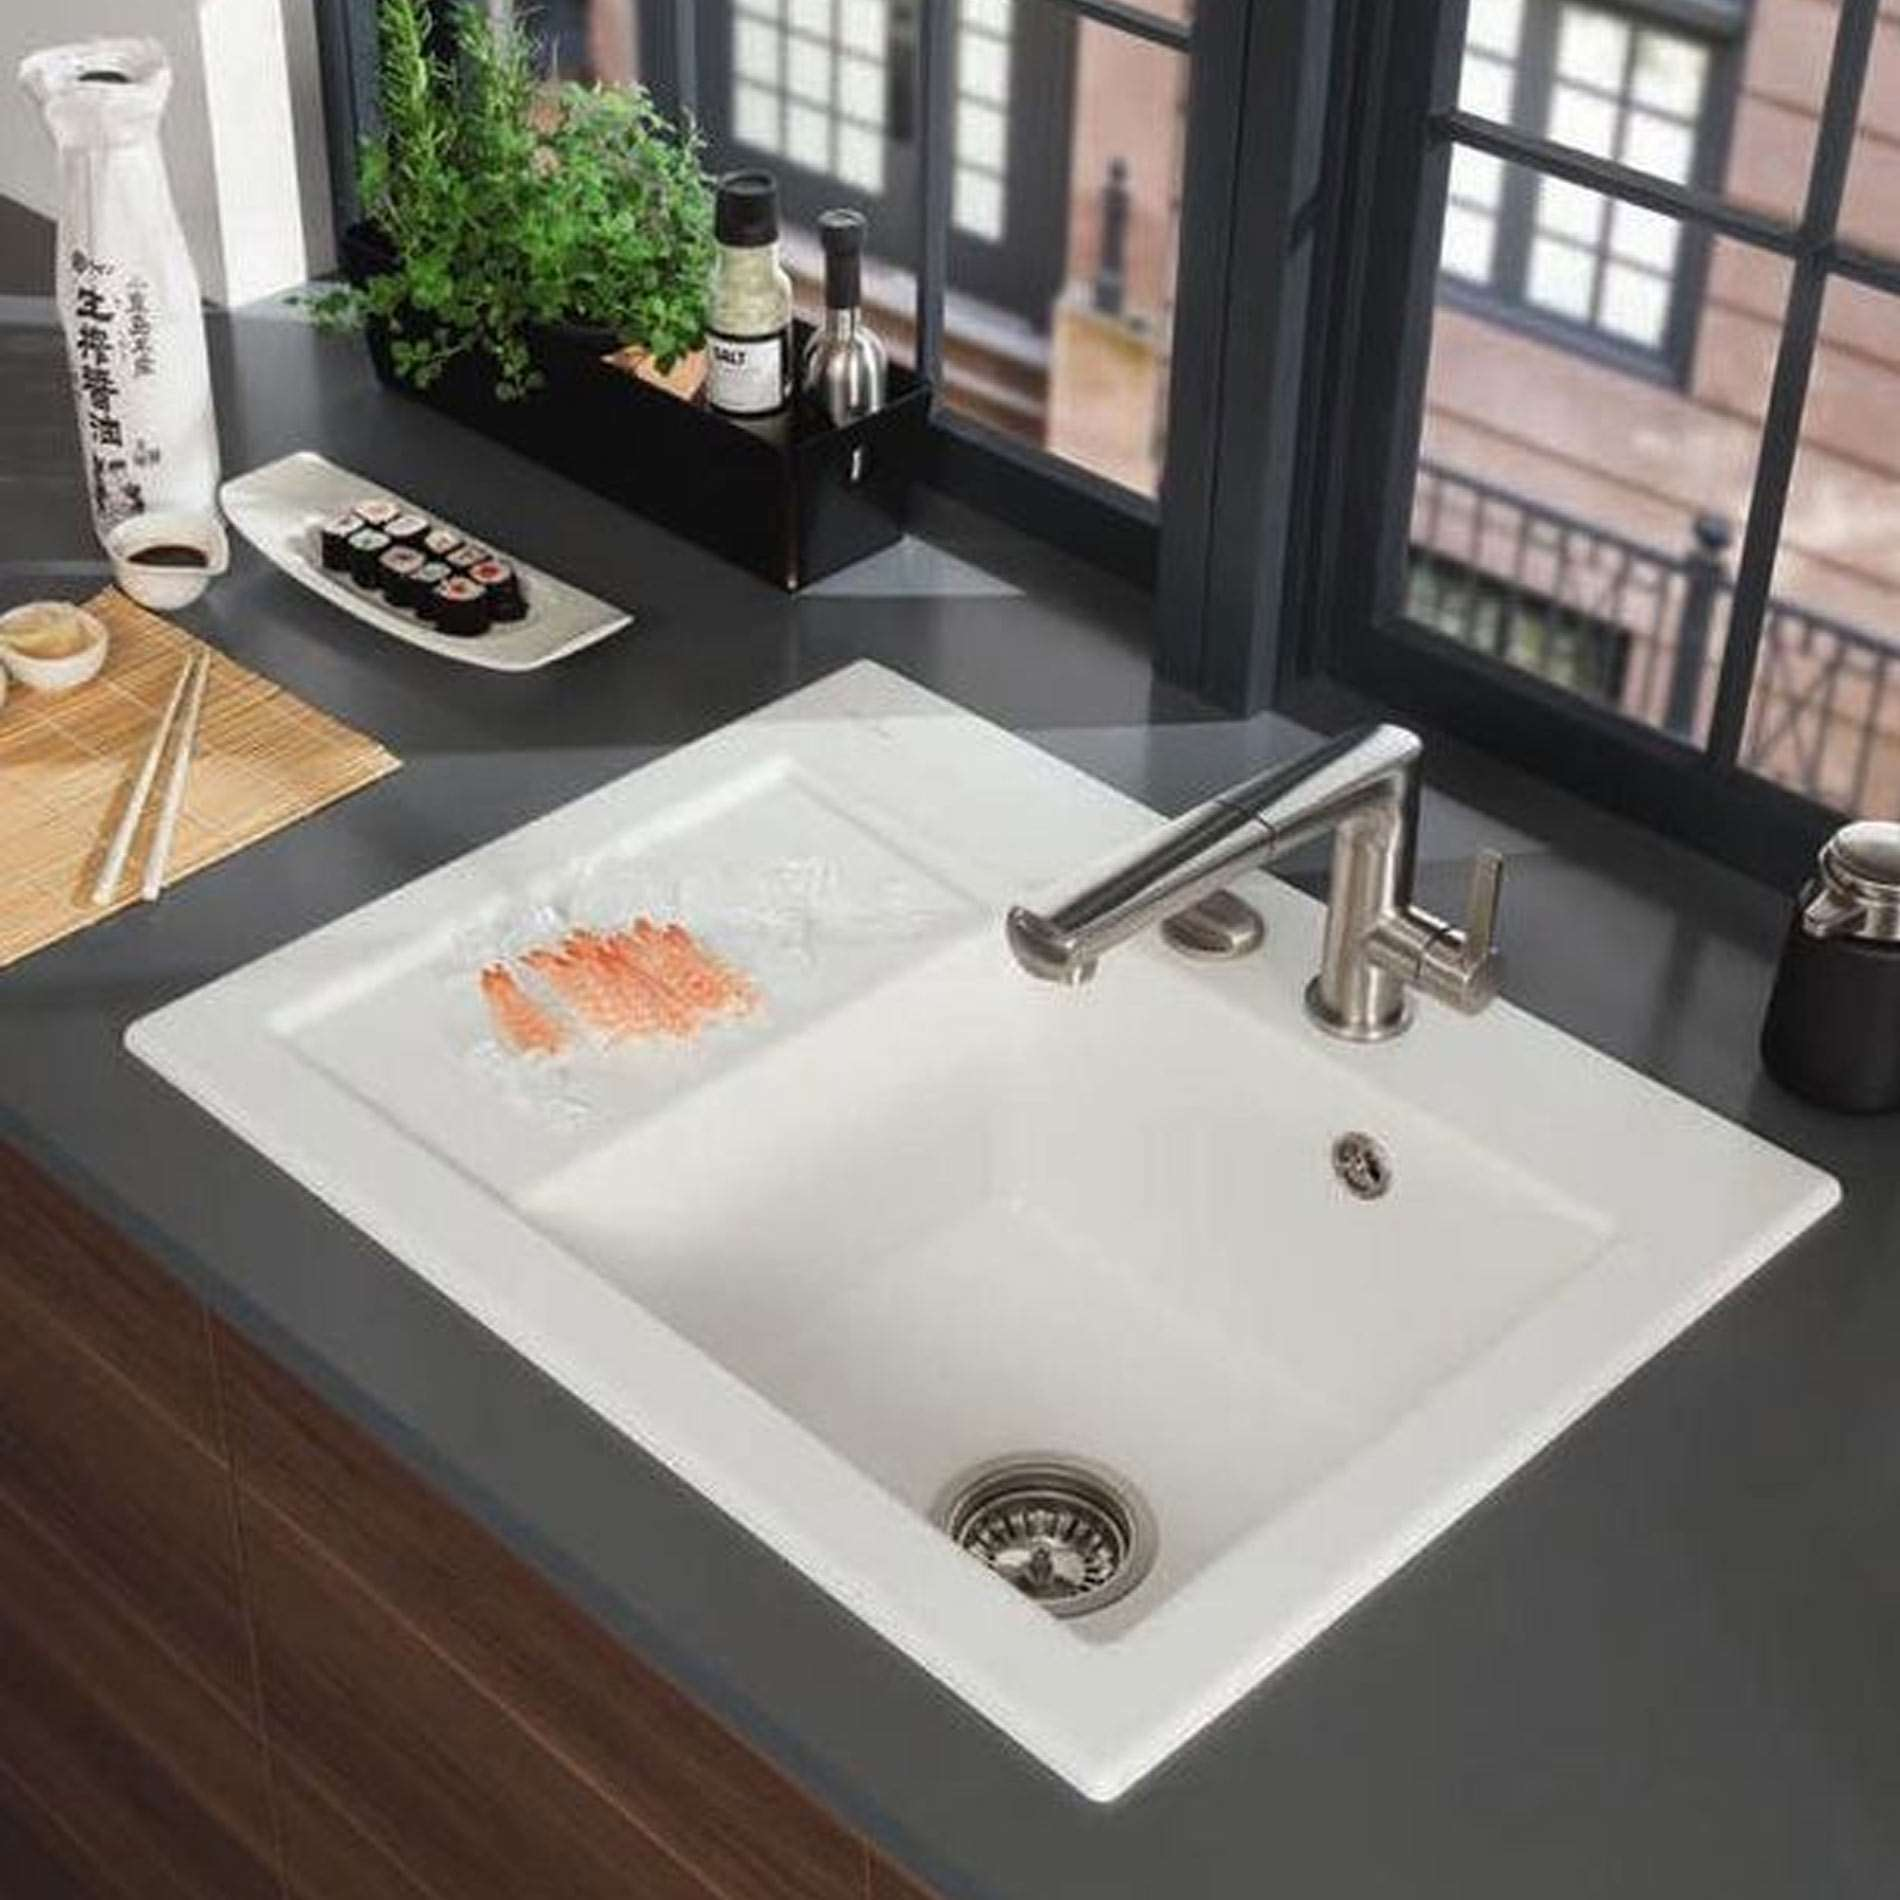 Villeroy & Boch: Subway 45 Compact Ceramic Sink - Kitchen ...